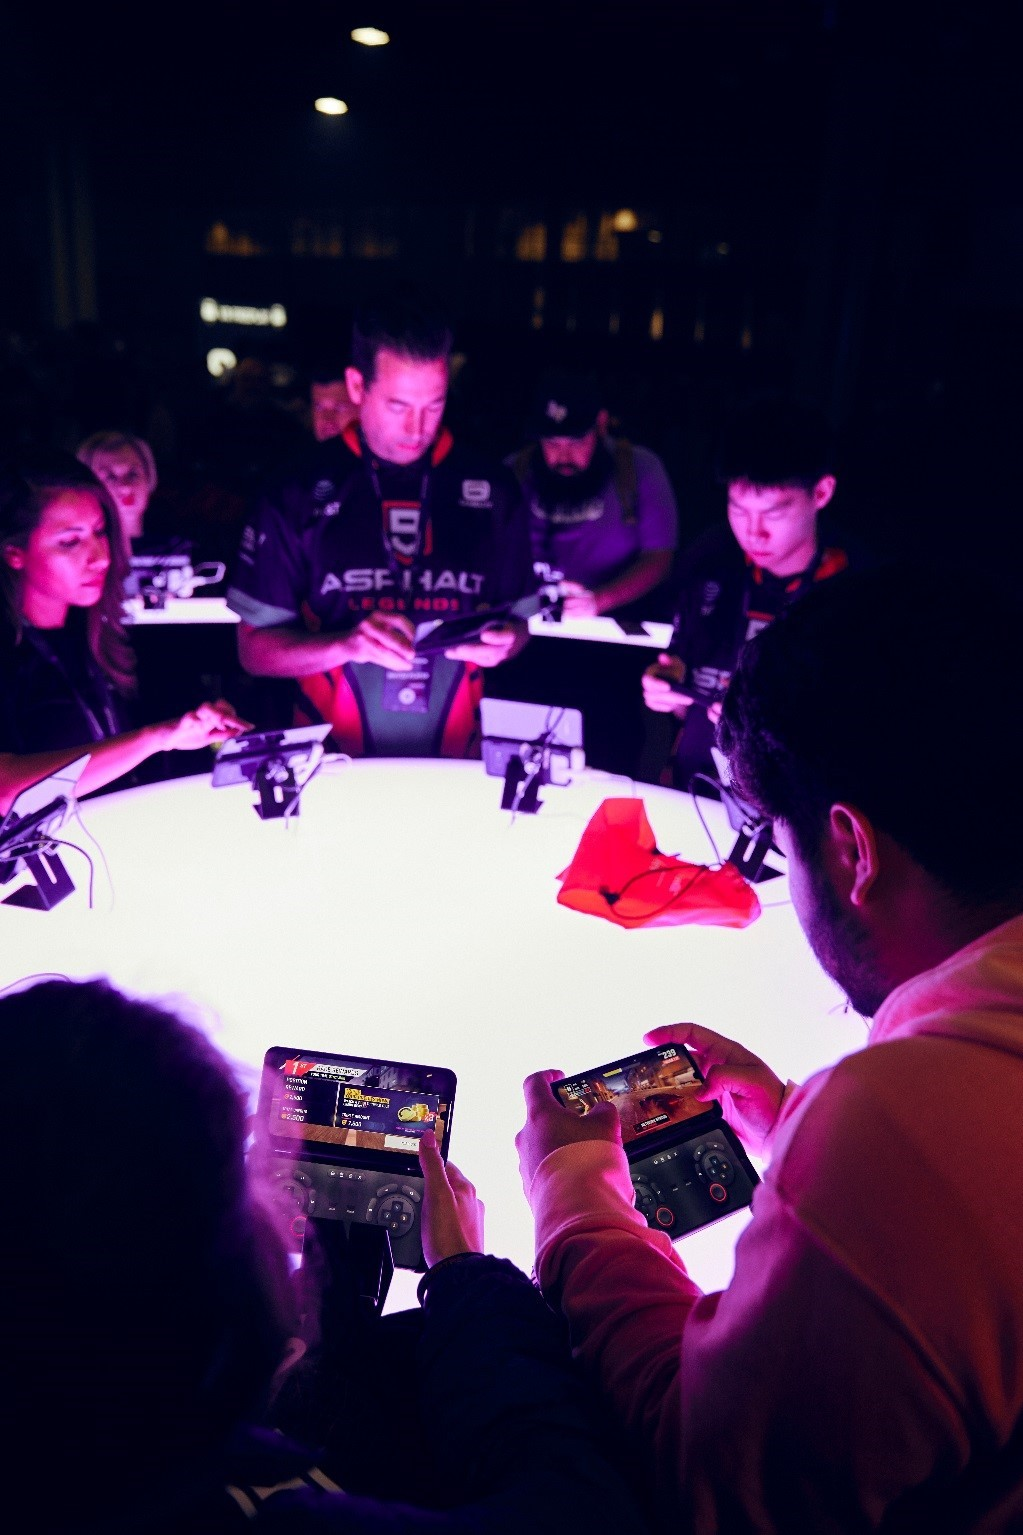 Gamers test out the gameplay on LG G8X ThinQ with Dual Screen around an illuminating round table.